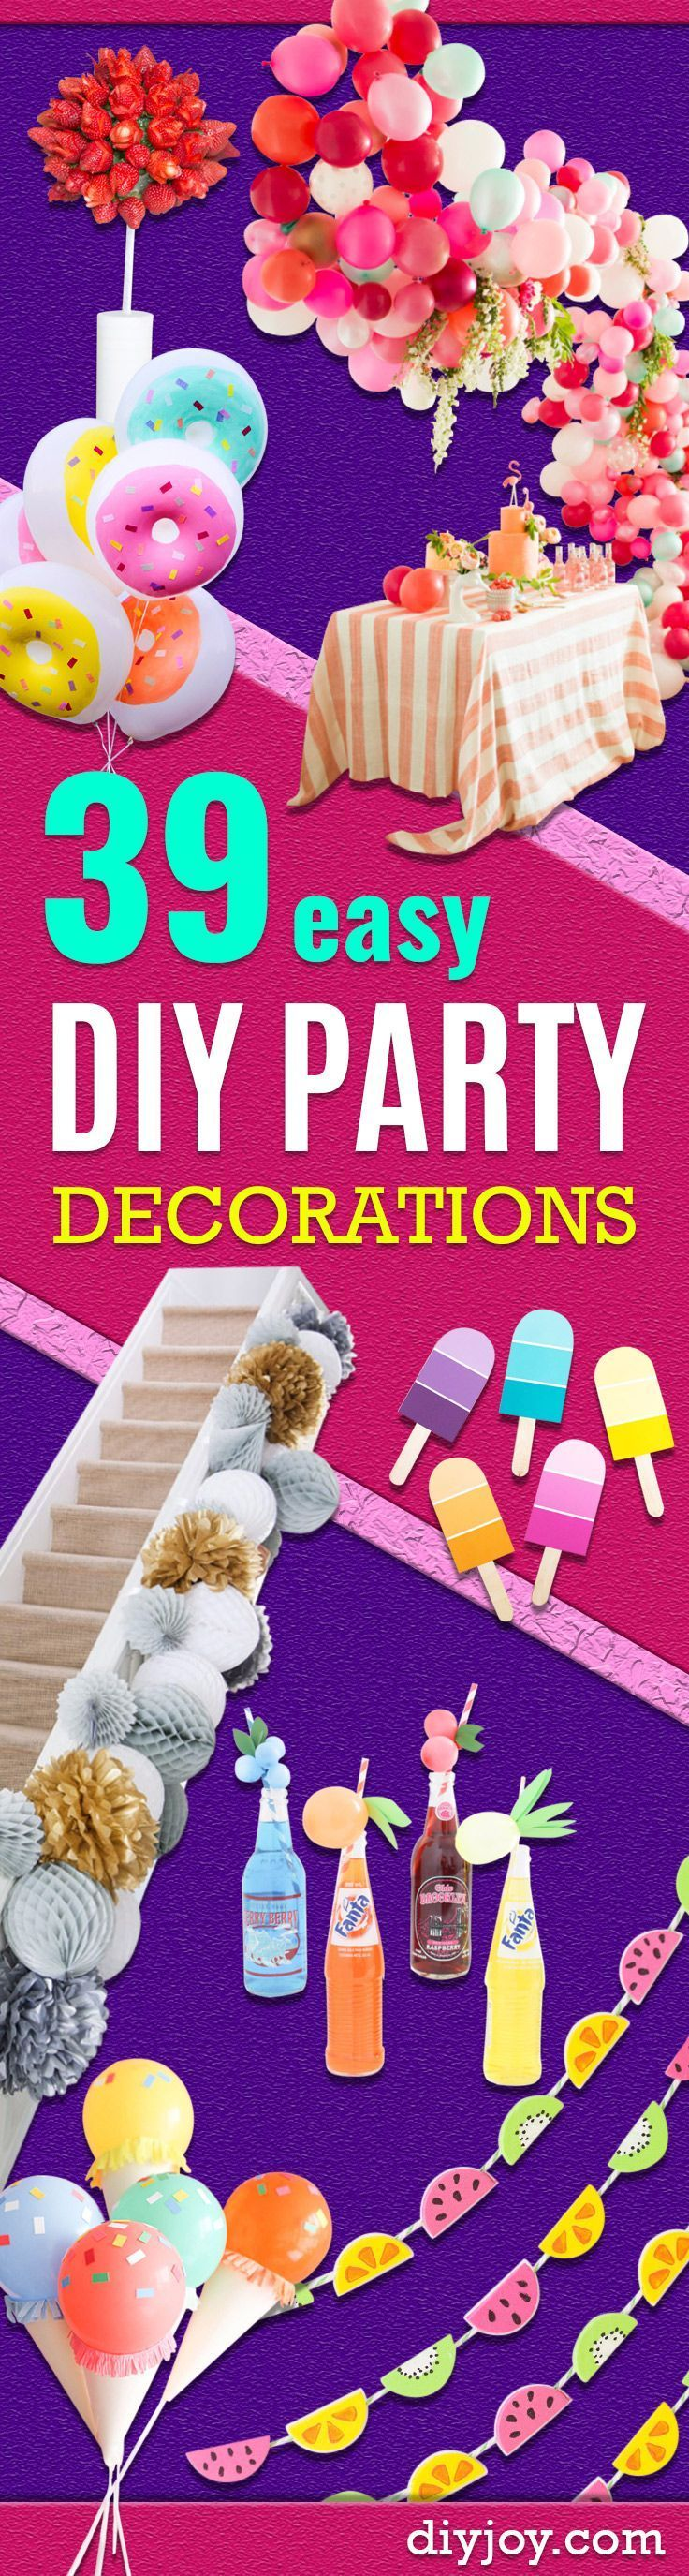 39 Easy DIY Party Decorations - Quick And Cheap Party Decors, Easy Ideas For DIY Party Decor, Birthday Decorations, Budget Do It Yourself Party Decorations http://diyjoy.com/easy-diy-party-decorations